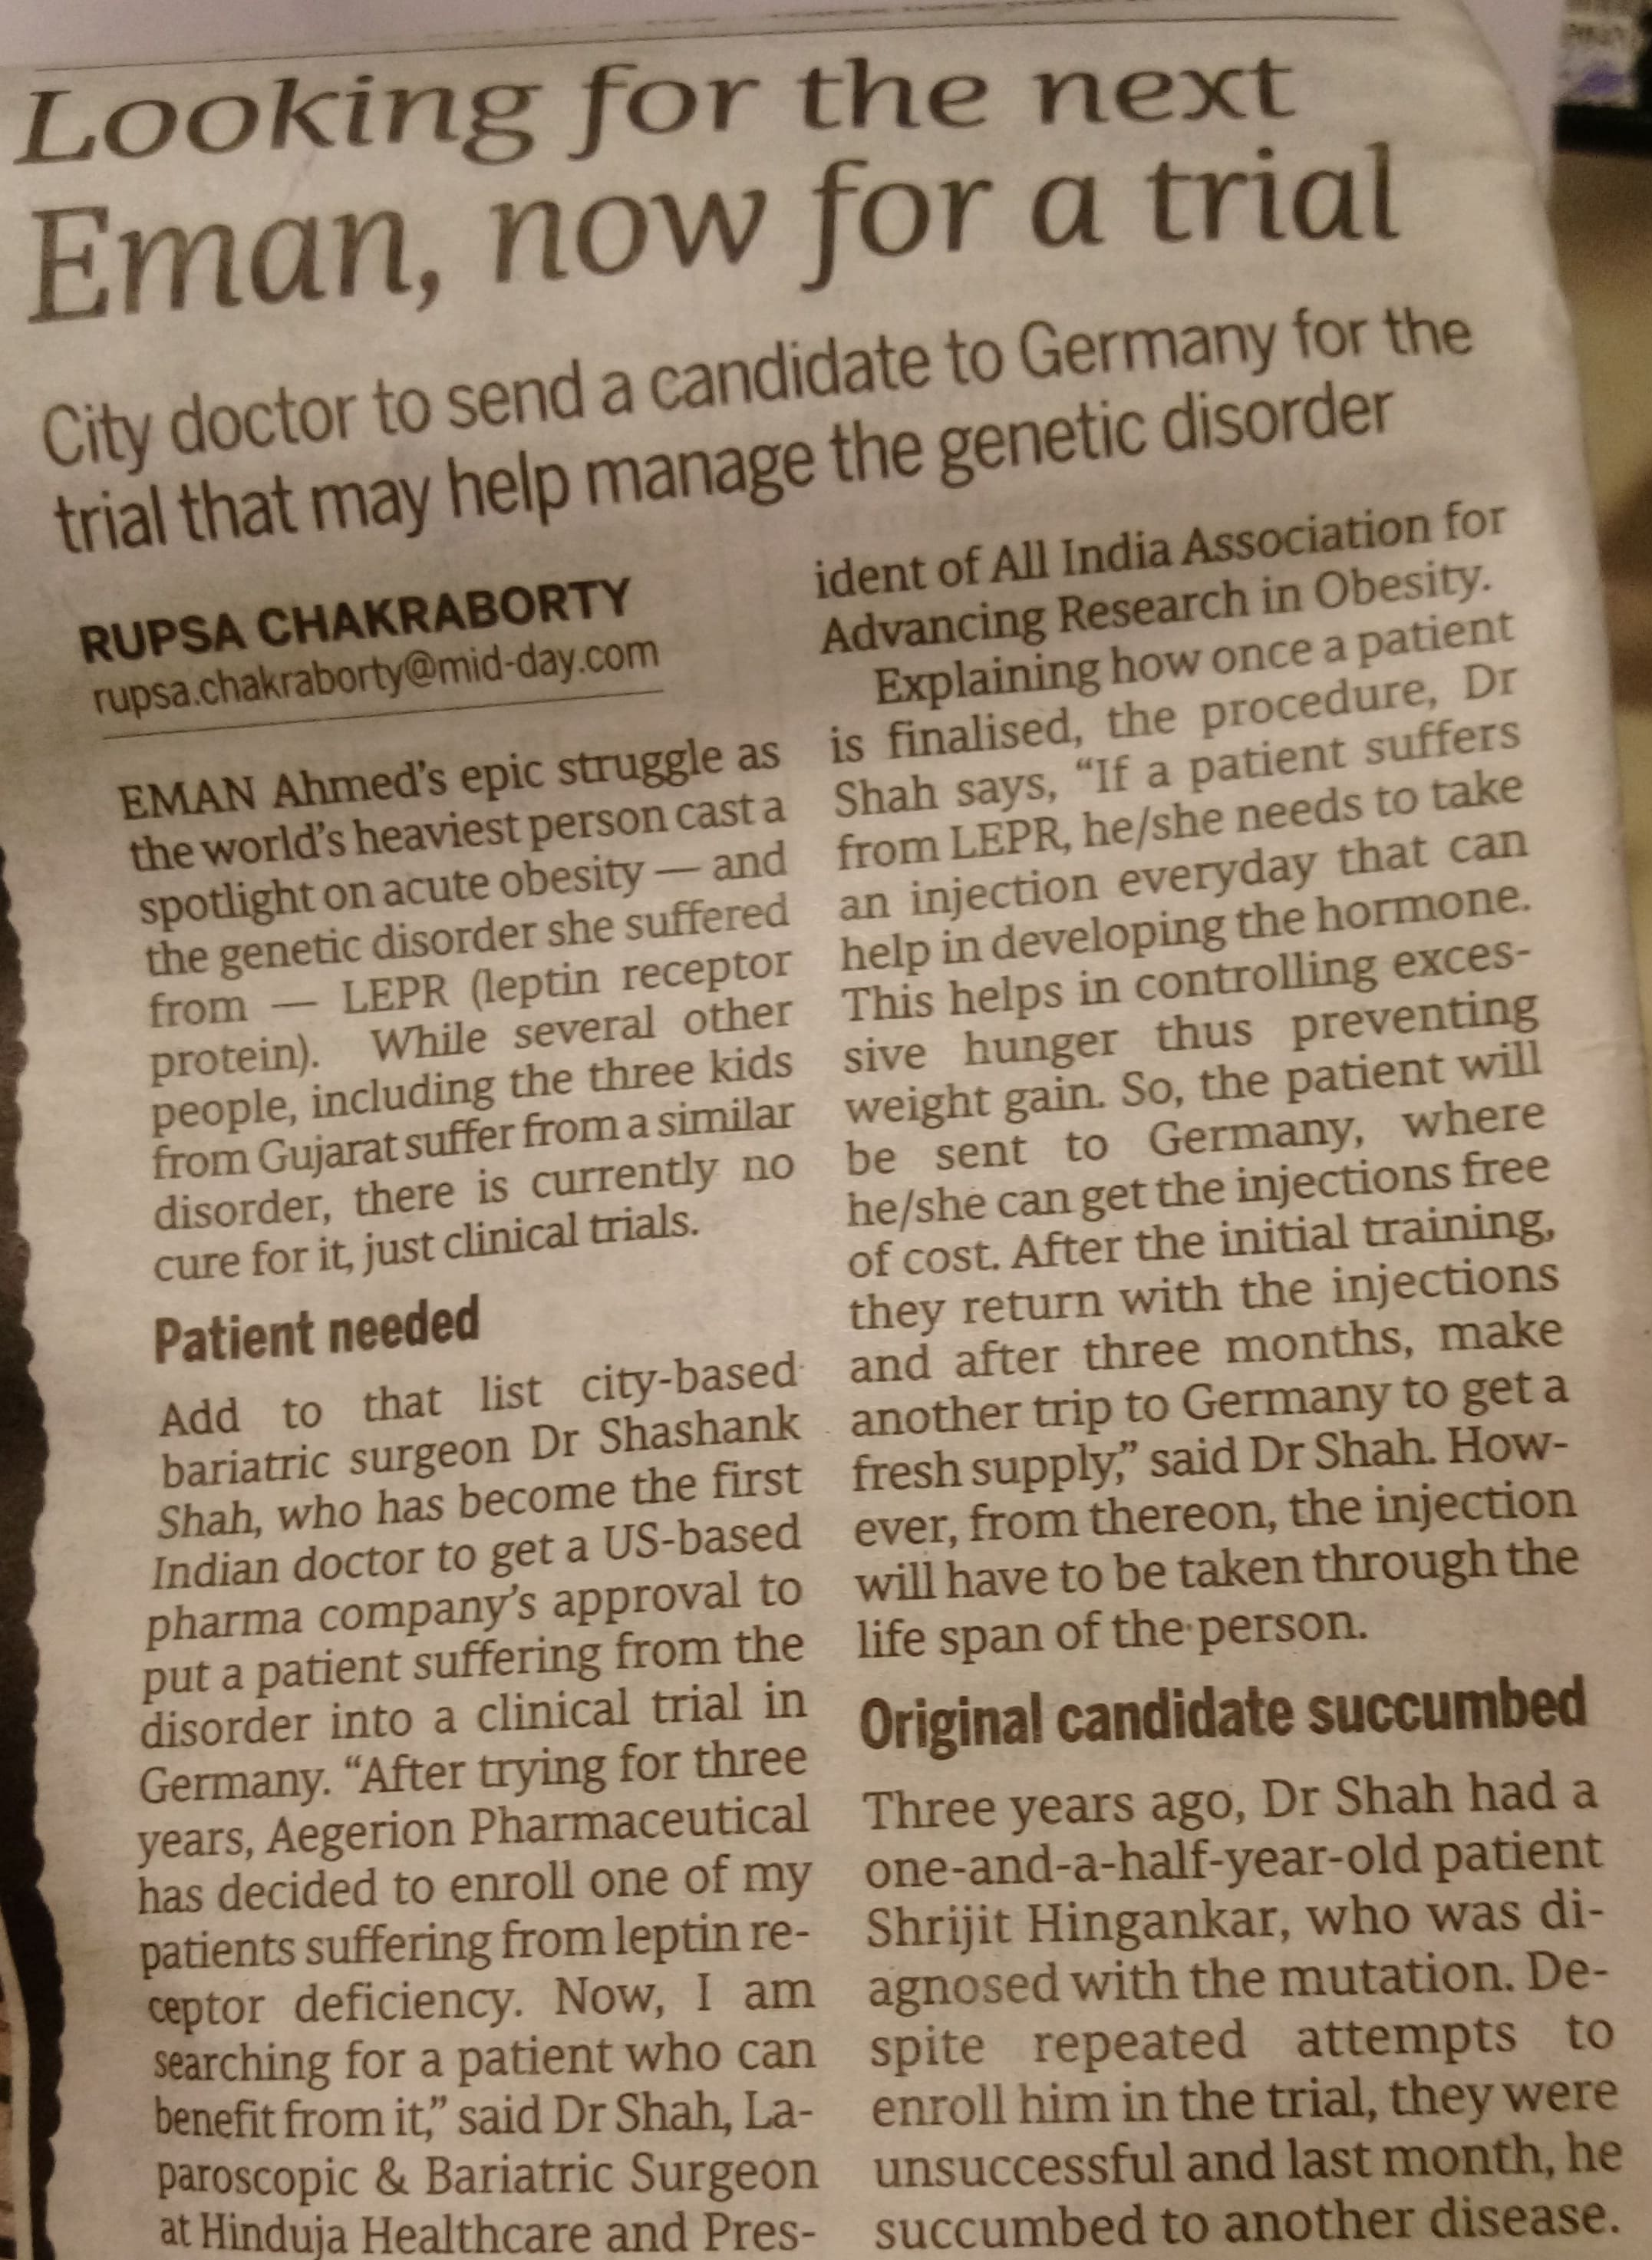 City doctor send a candidate to Germany for a genetic disorder - Hinduja Healthcare